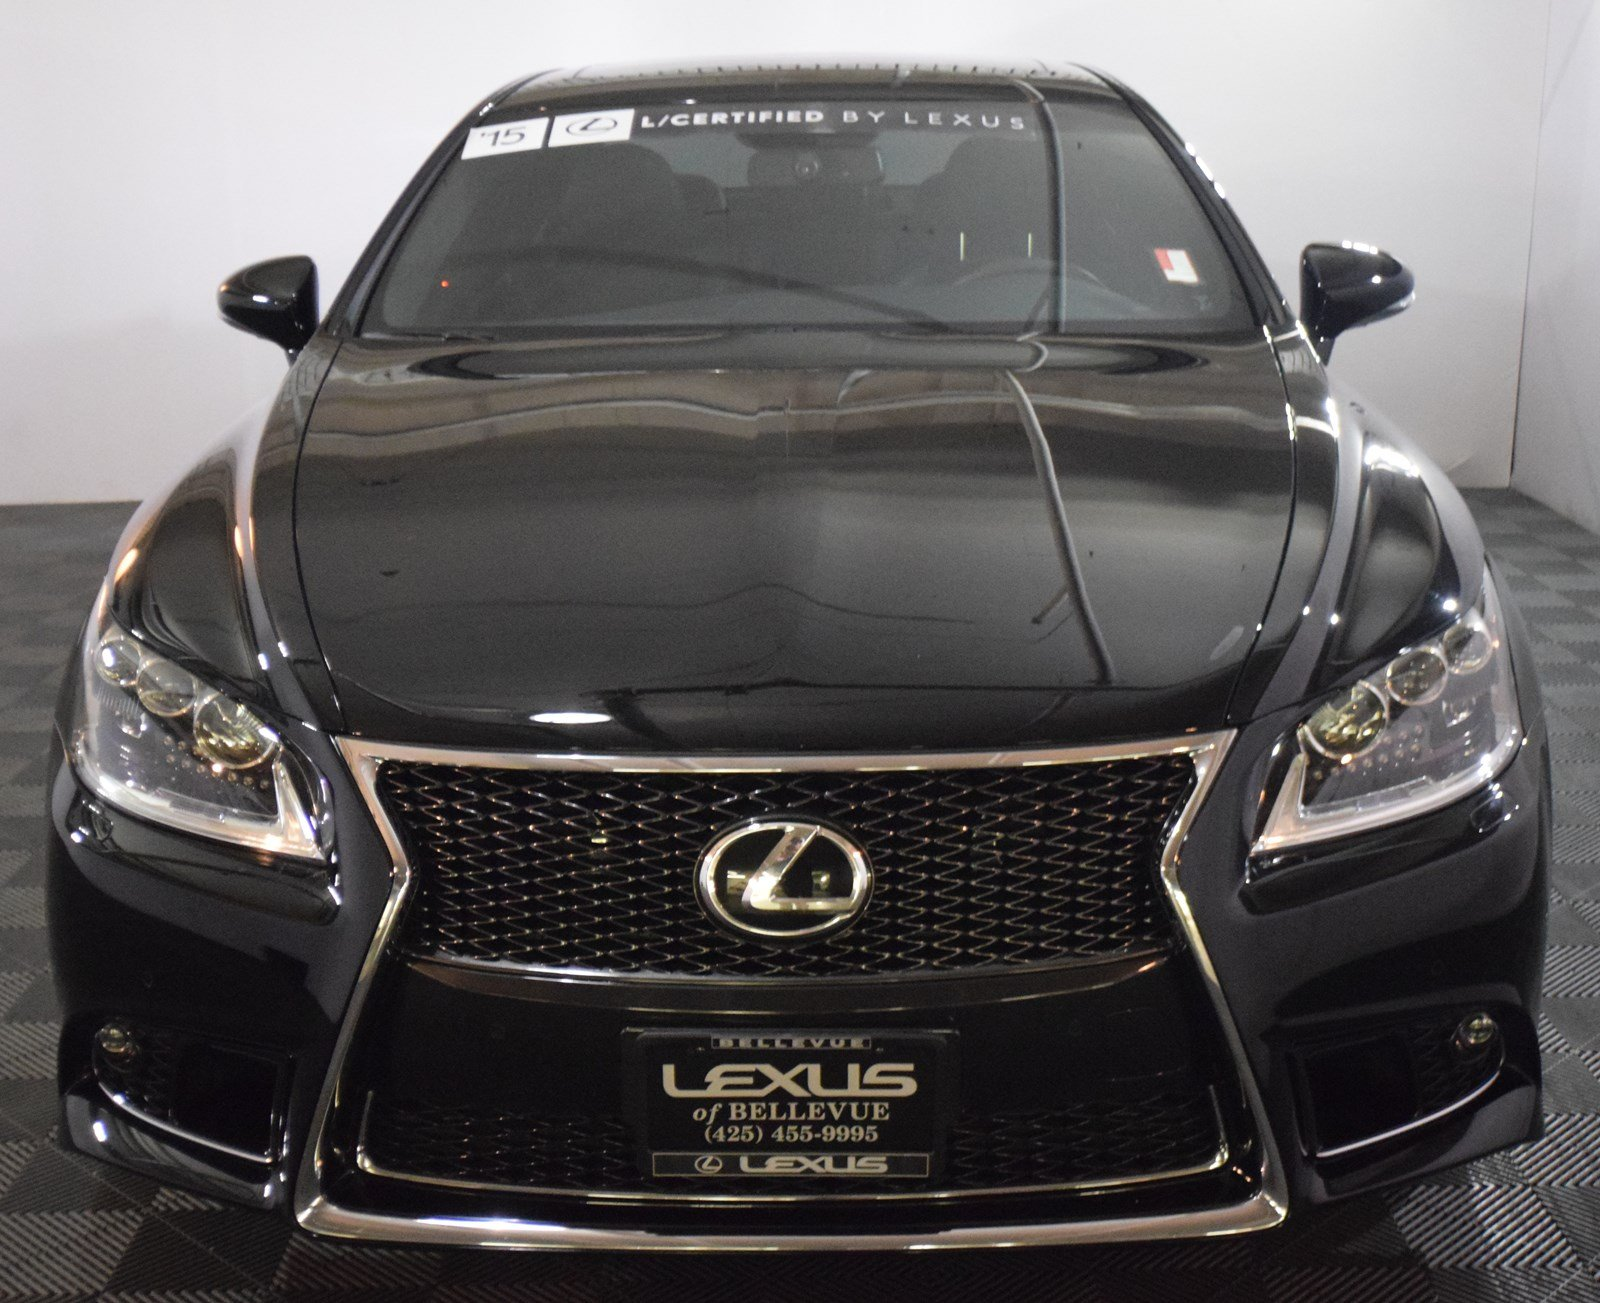 Blue Lexus Ls 460 For Sale ▷ Used Cars Buysellsearch